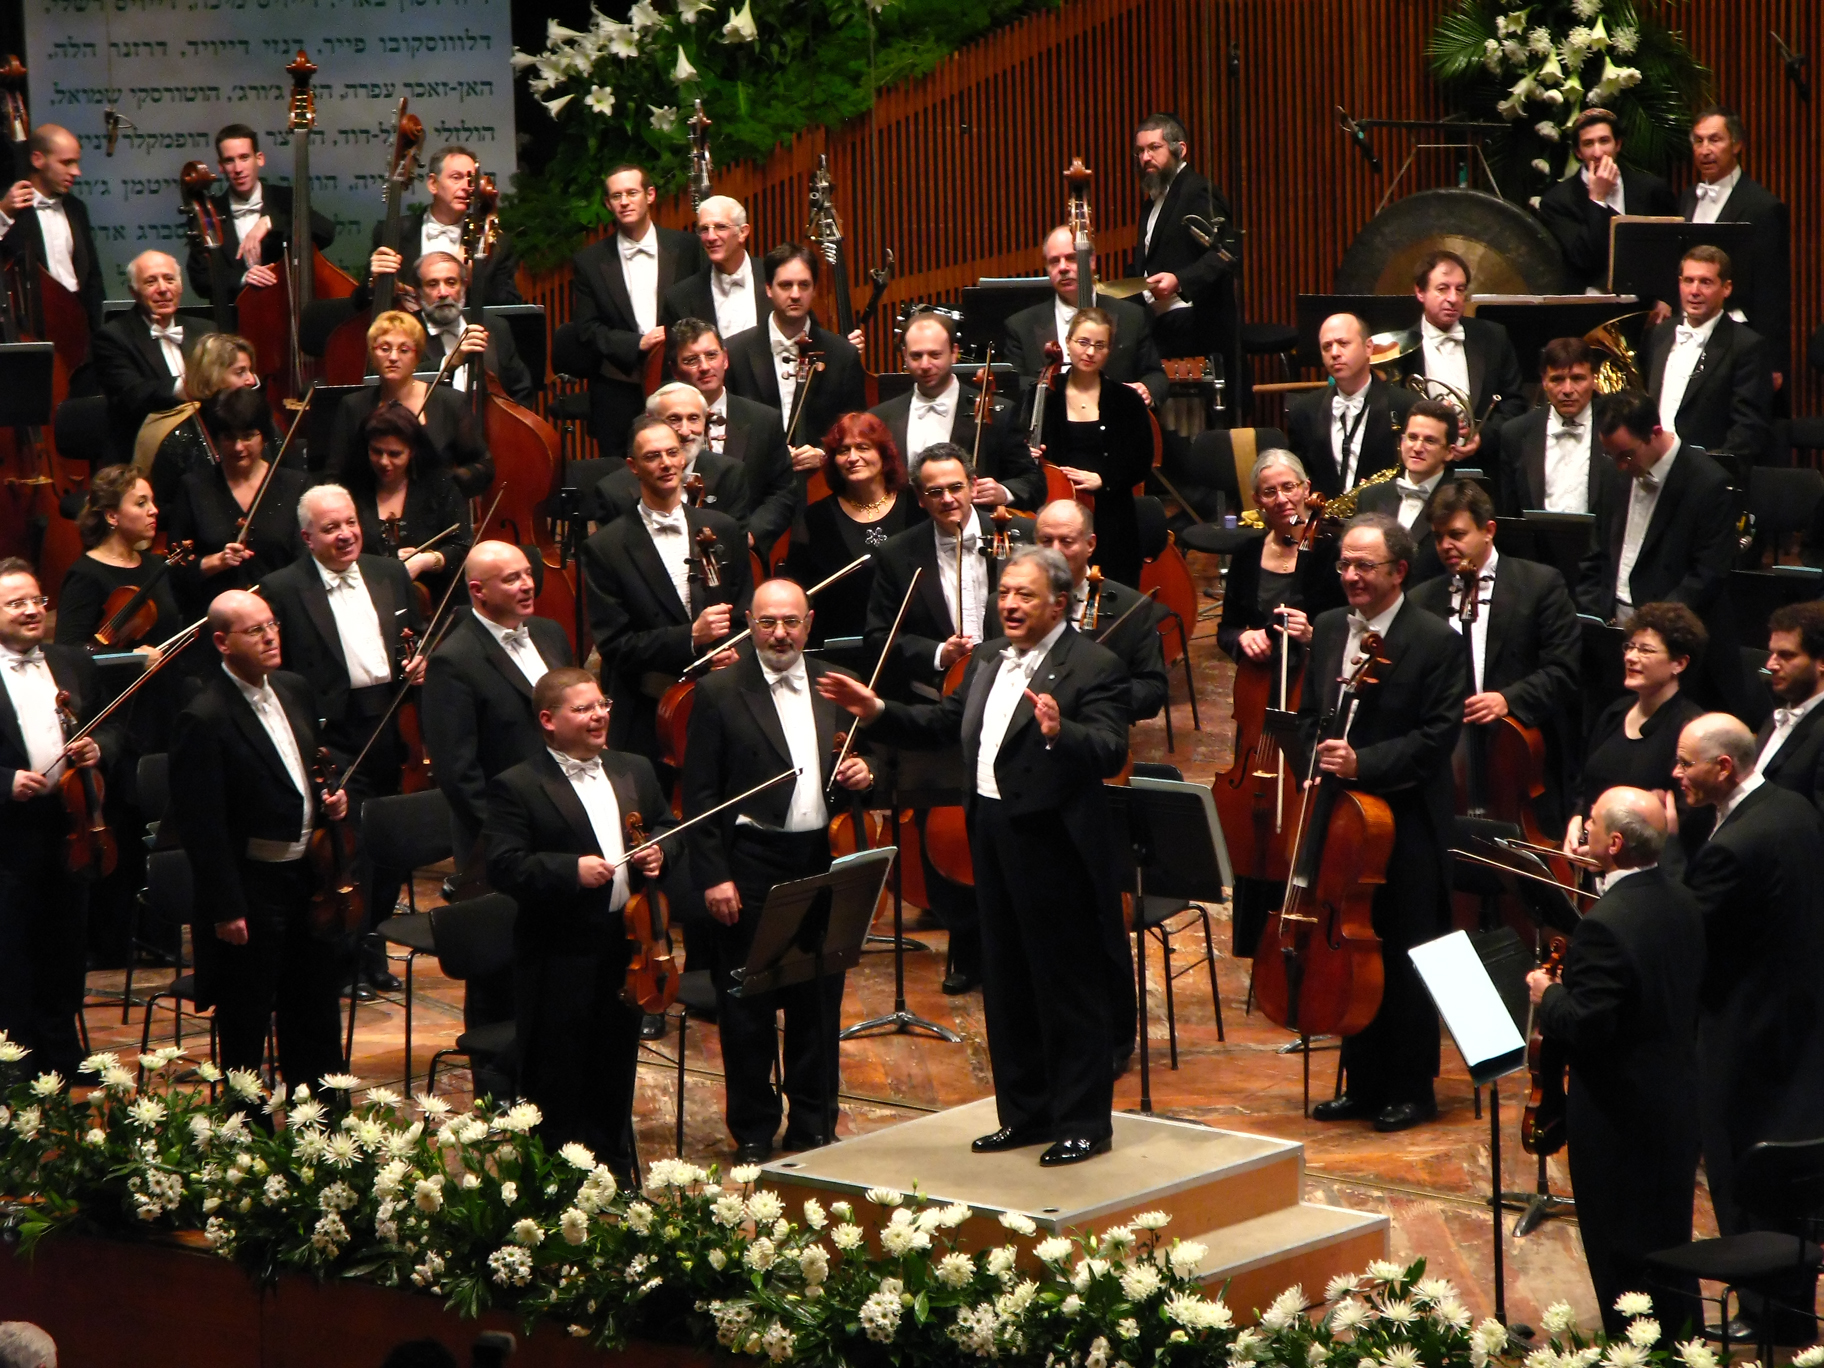 Israel Philharmonic Orchestra (IPO) Yeugene [GFDL (http://www.gnu.org/copyleft/fdl.html) or CC BY-SA 3.0 (https://creativecommons.org/licenses/by-sa/3.0)]